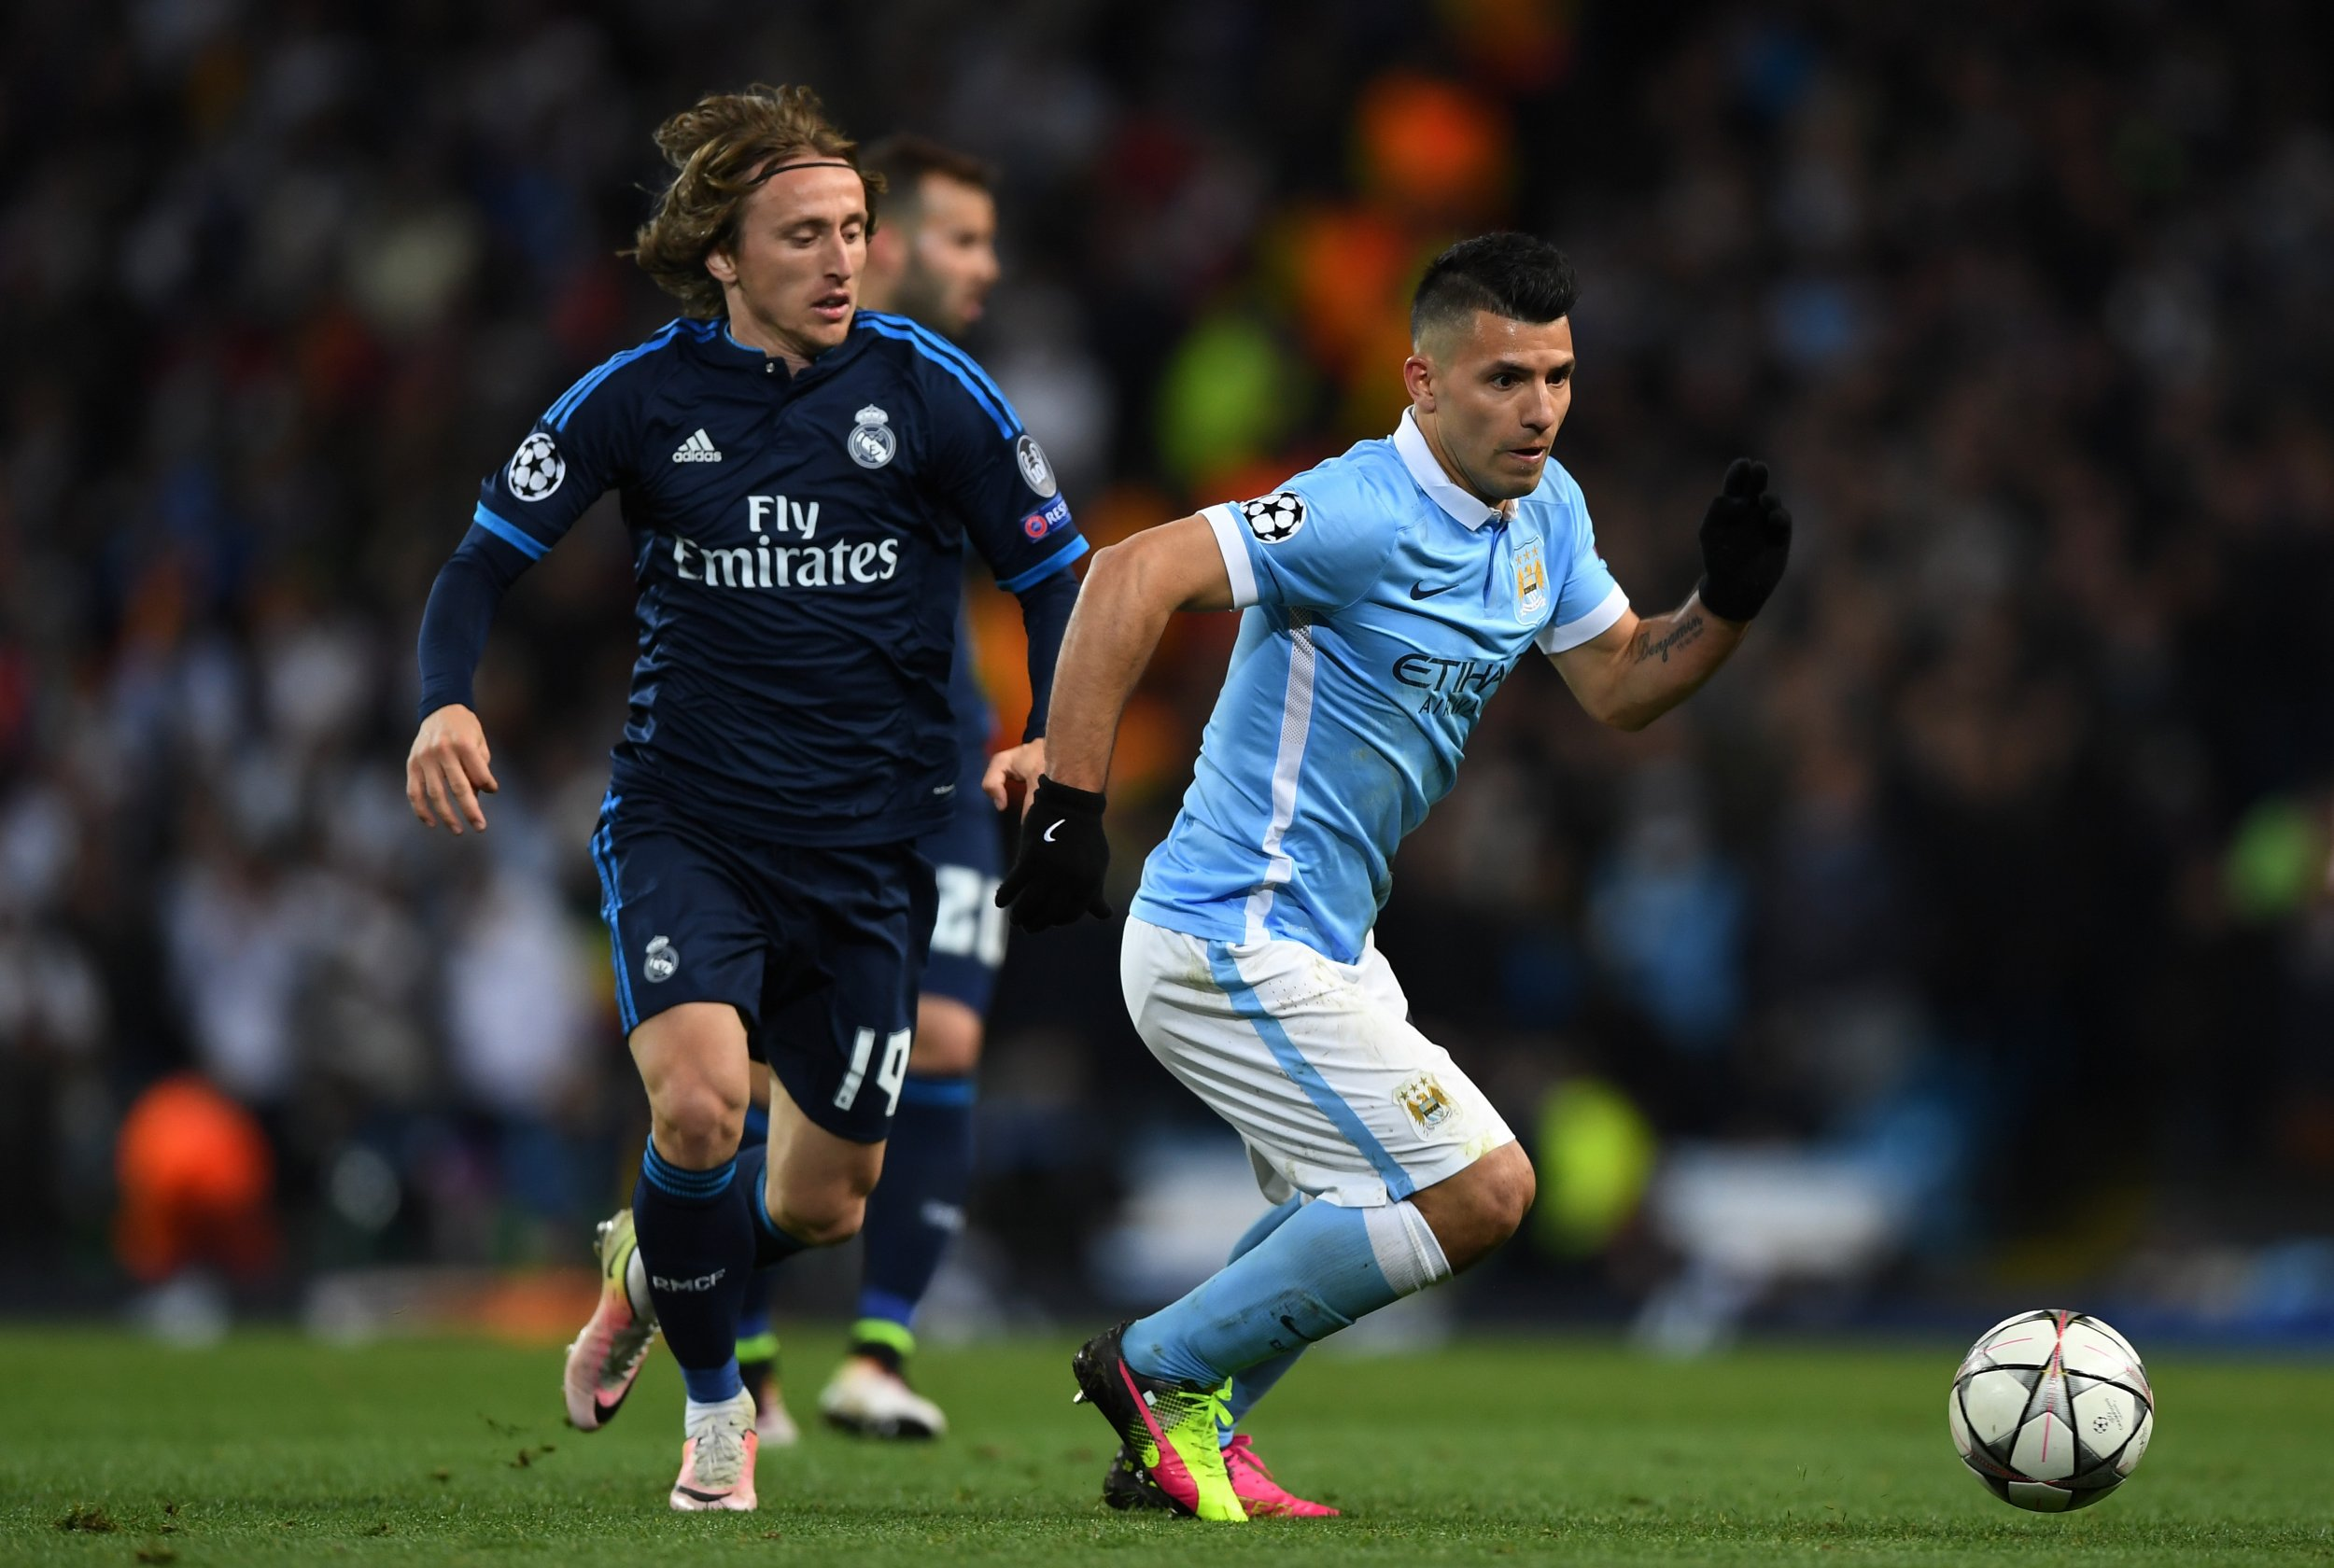 Sergio Aguero and Luka Modric